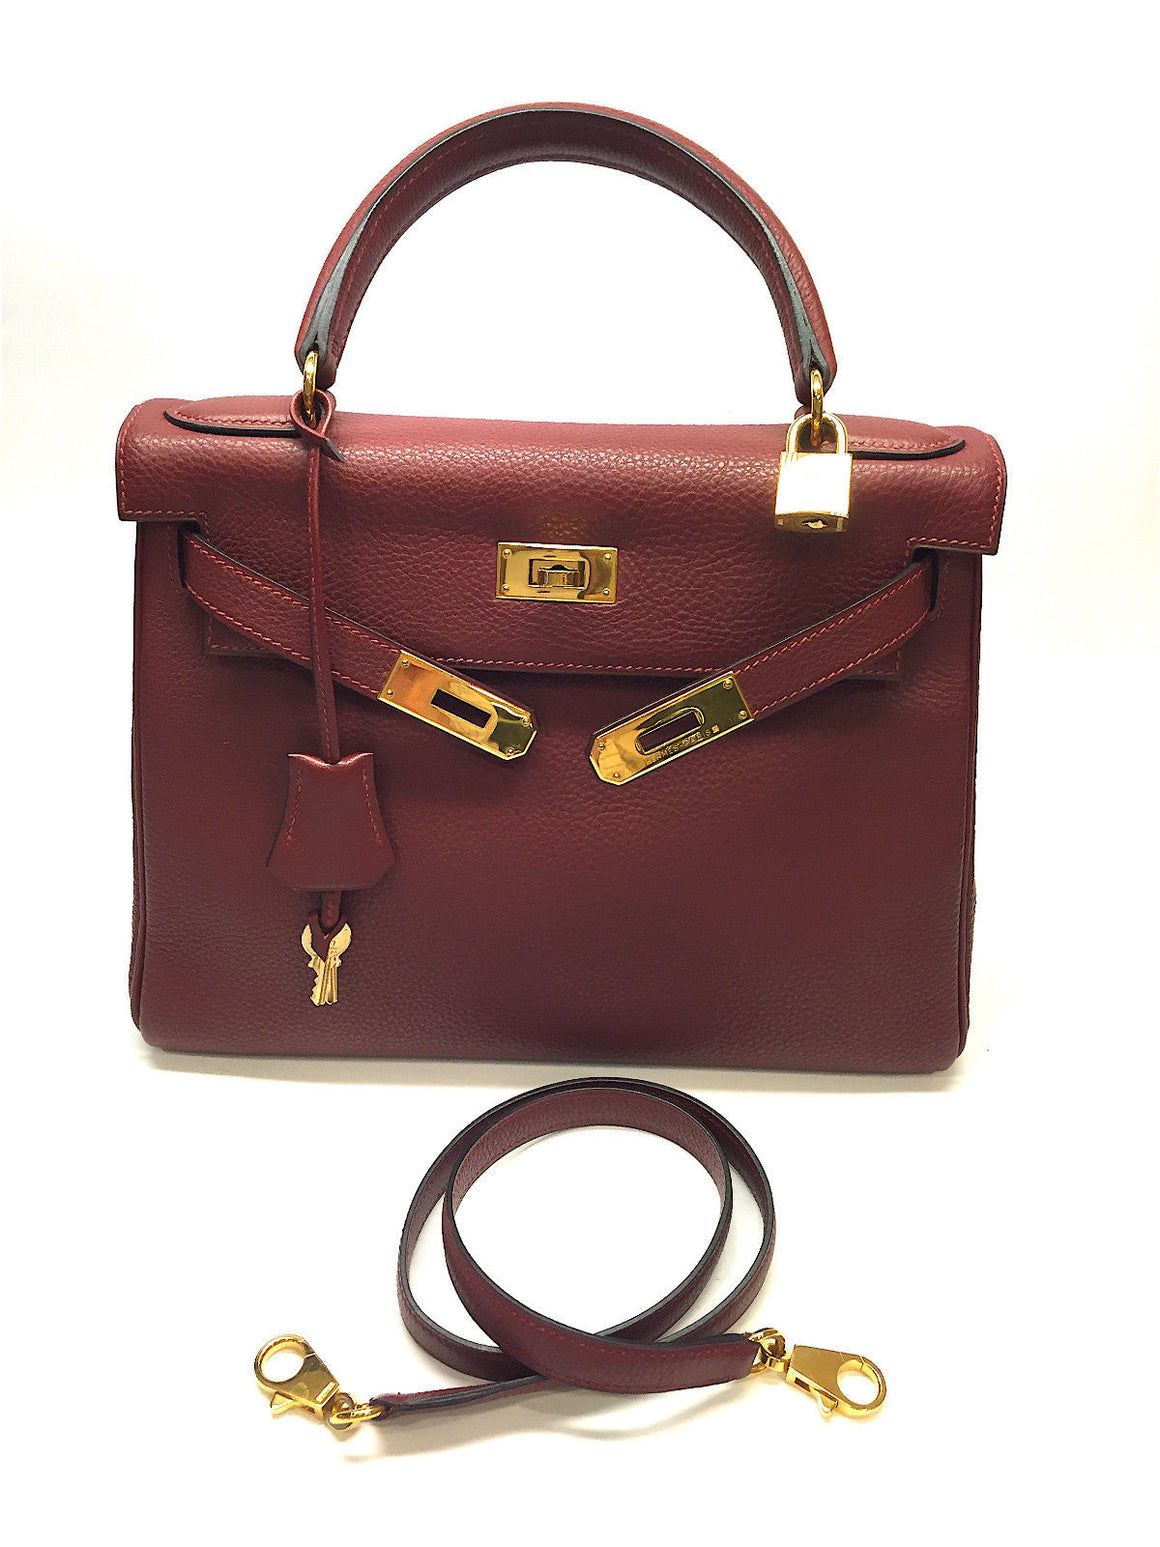 Hermes Kelly 28cm Rouge H Togo Leather Gold H/W Retourne Bag